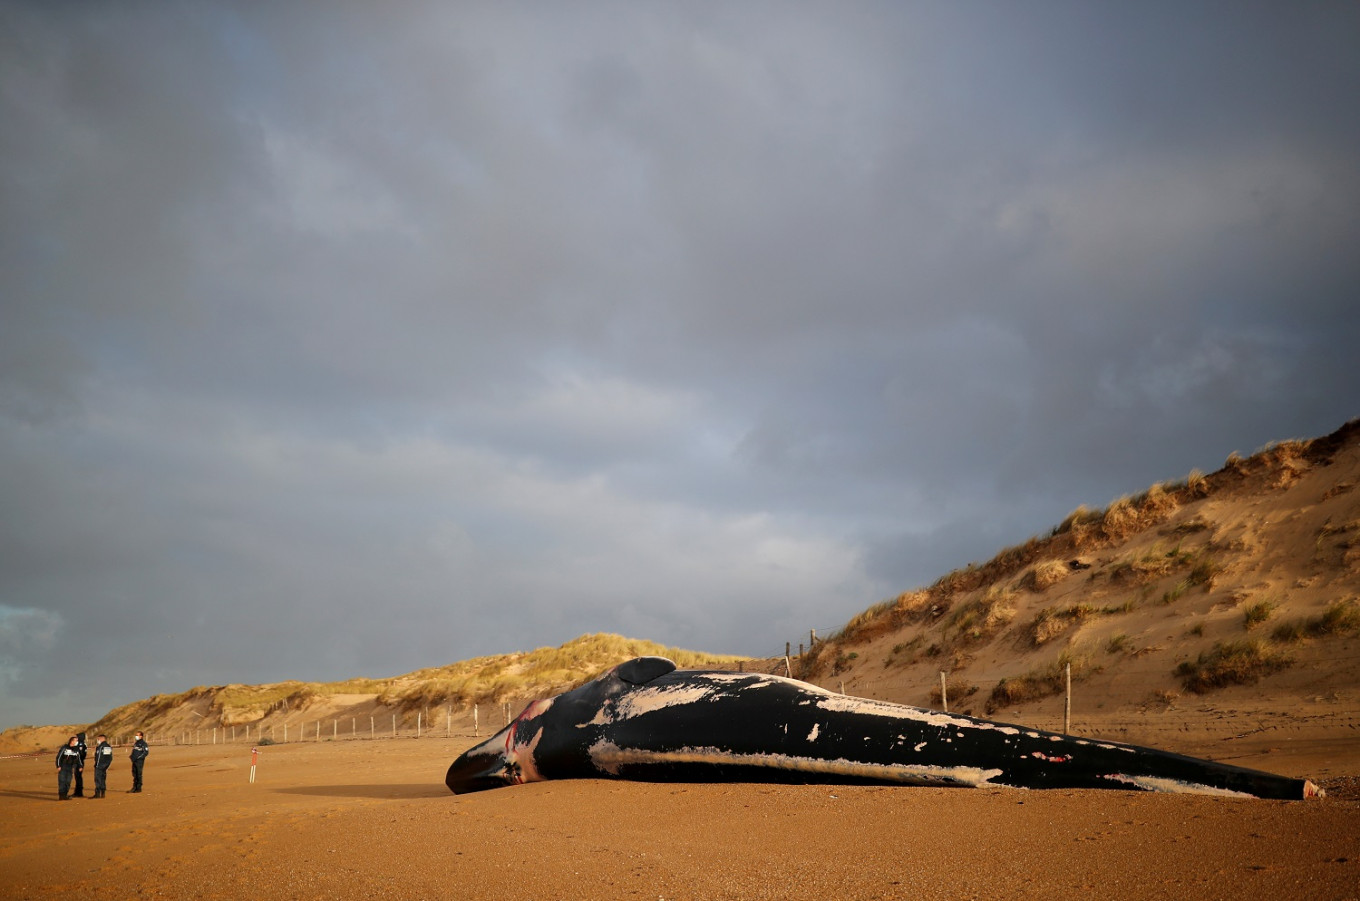 Emaciated fin whales wash up dead on French shores